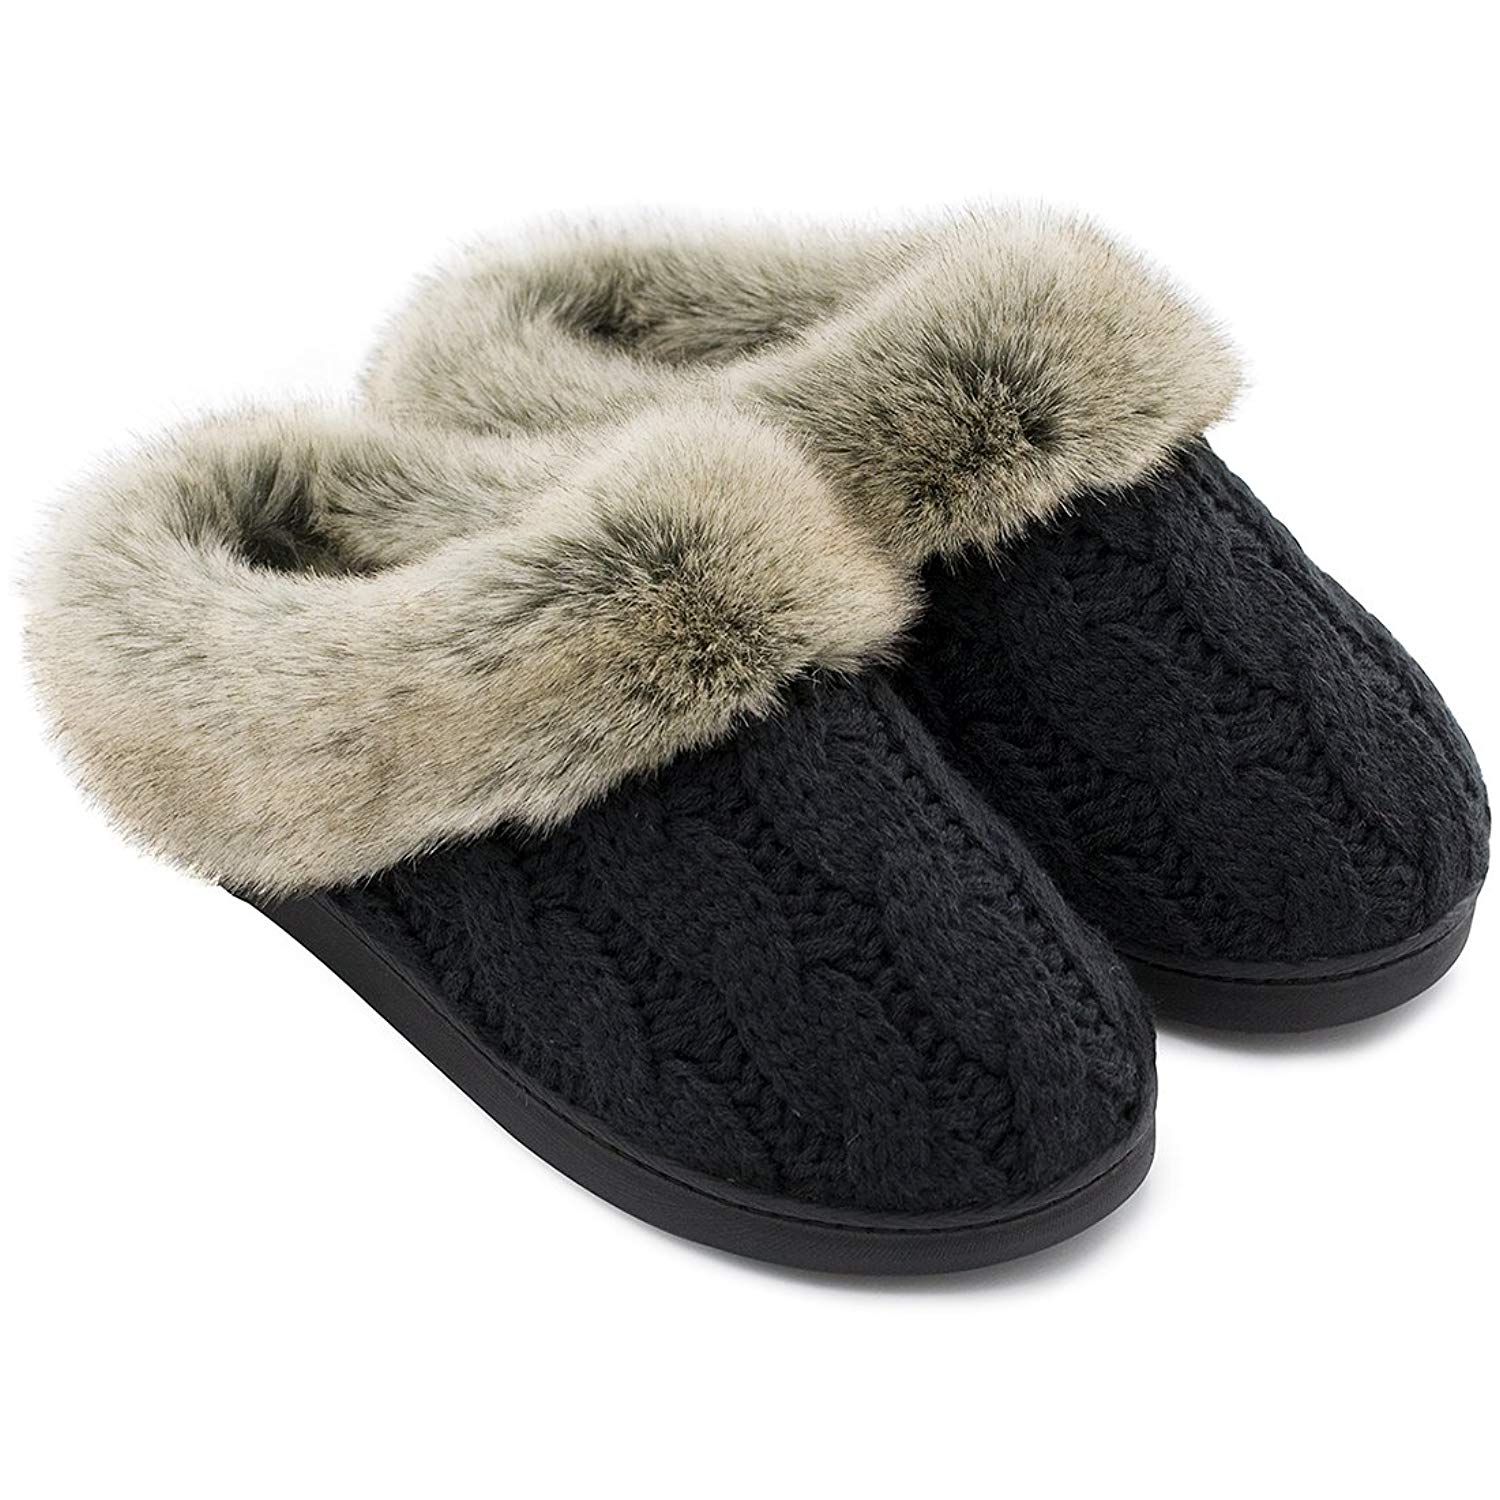 Women's Soft Yarn Cable Knit Slippers Memory Foam Anti-Skid Sole House Shoes w/Faux Fur Collar, Indoor & Outdoor